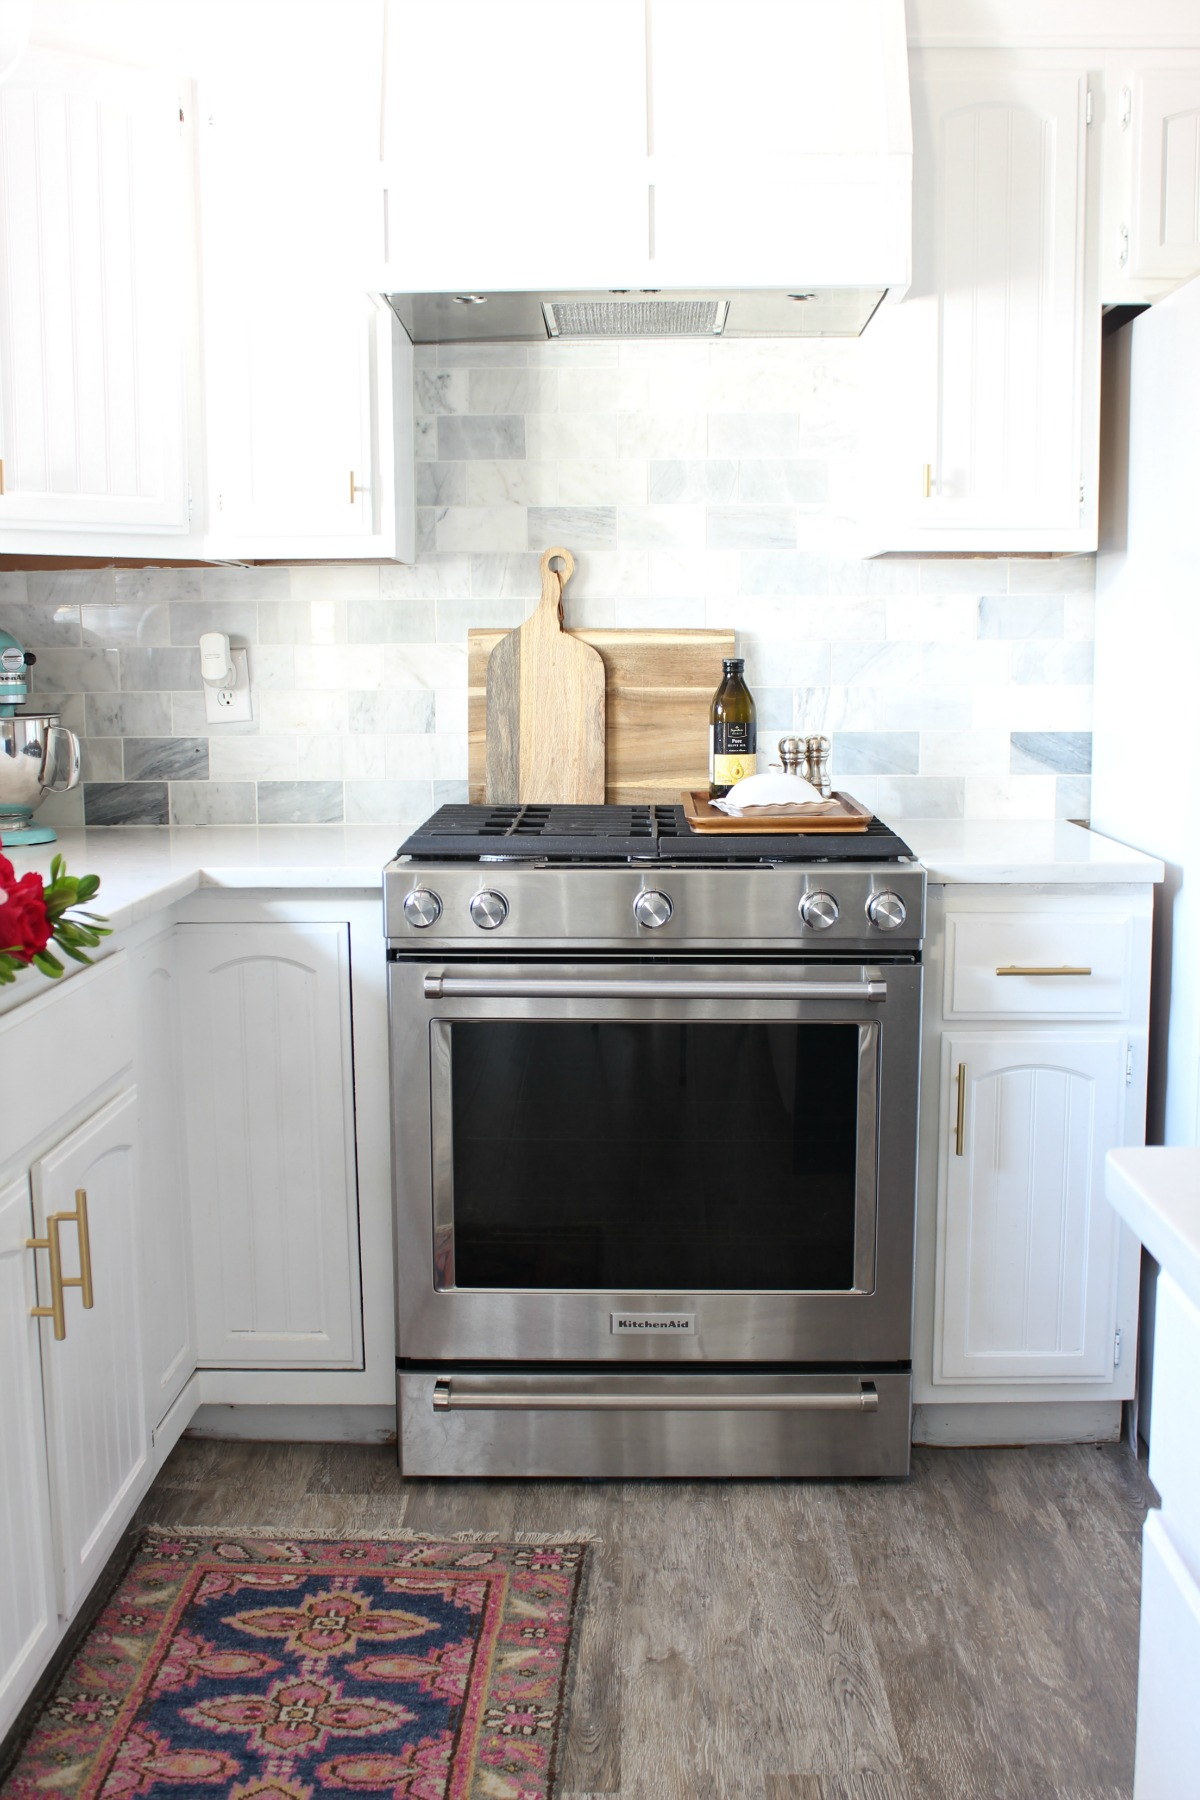 Prescott View Home Reno DIY Kitchen Remodel Reveal Classy Clutter